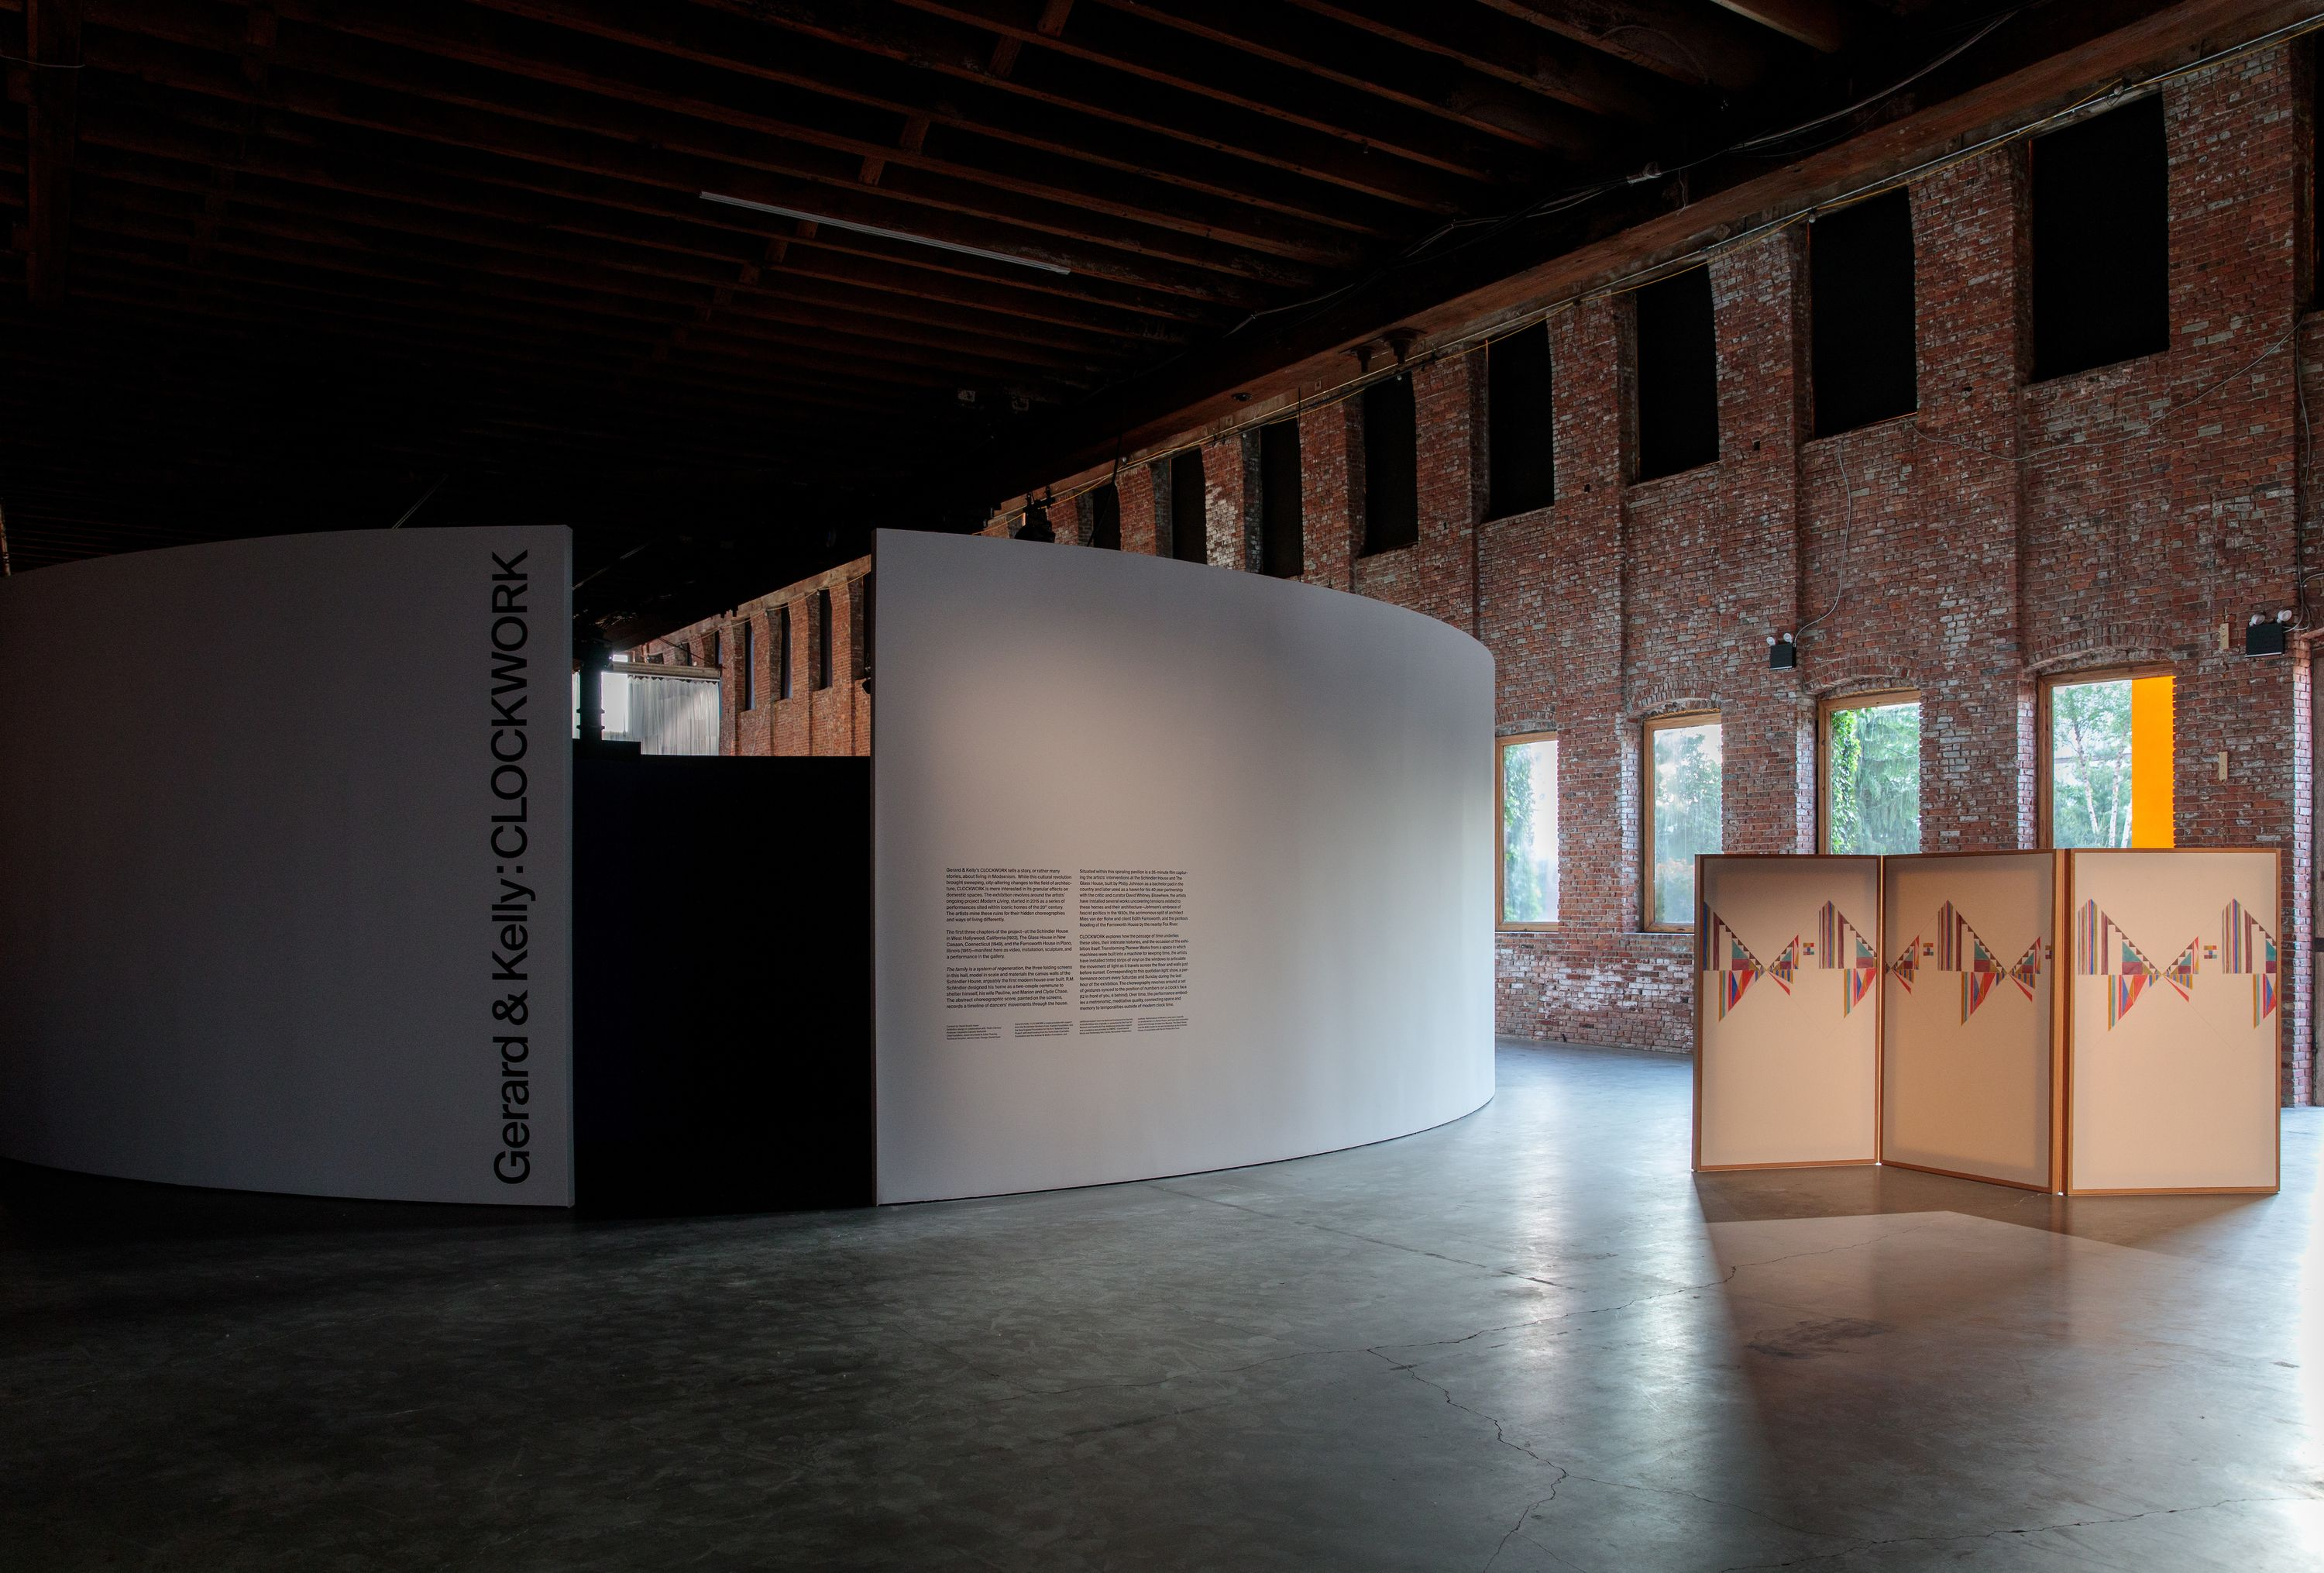 An installation view of the entrance of CLOCKWORK, featuring the entrance to the round-walled video room to the left, and a human-sized folding screen painted in pastels to the right.